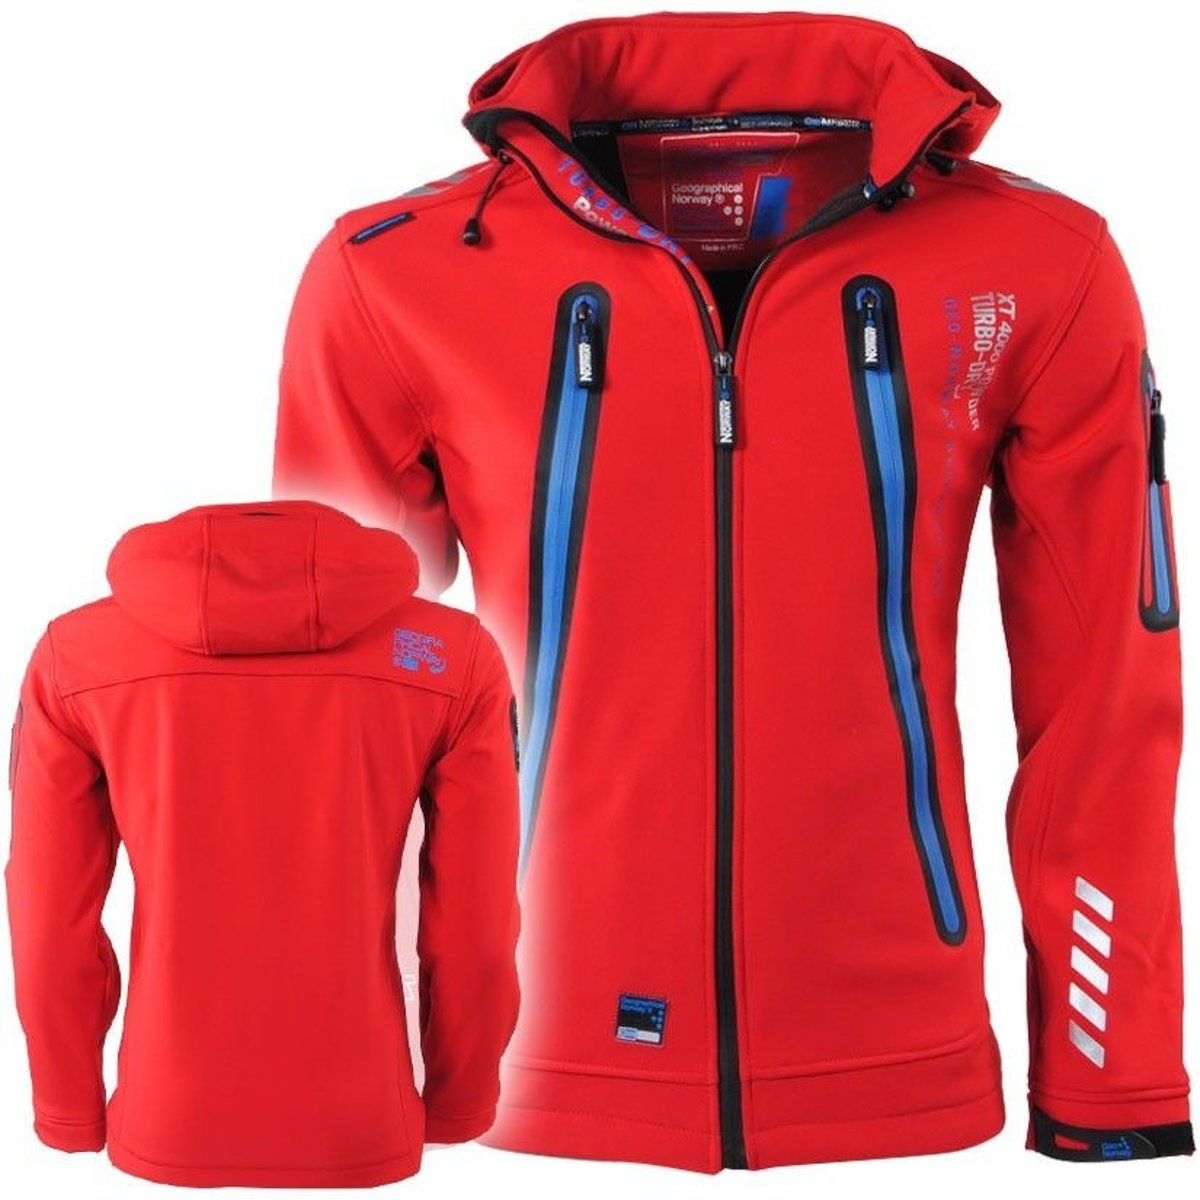 Geographical Norway - Heren - Softshell Jas - Capuchon - Tarzan - Rood